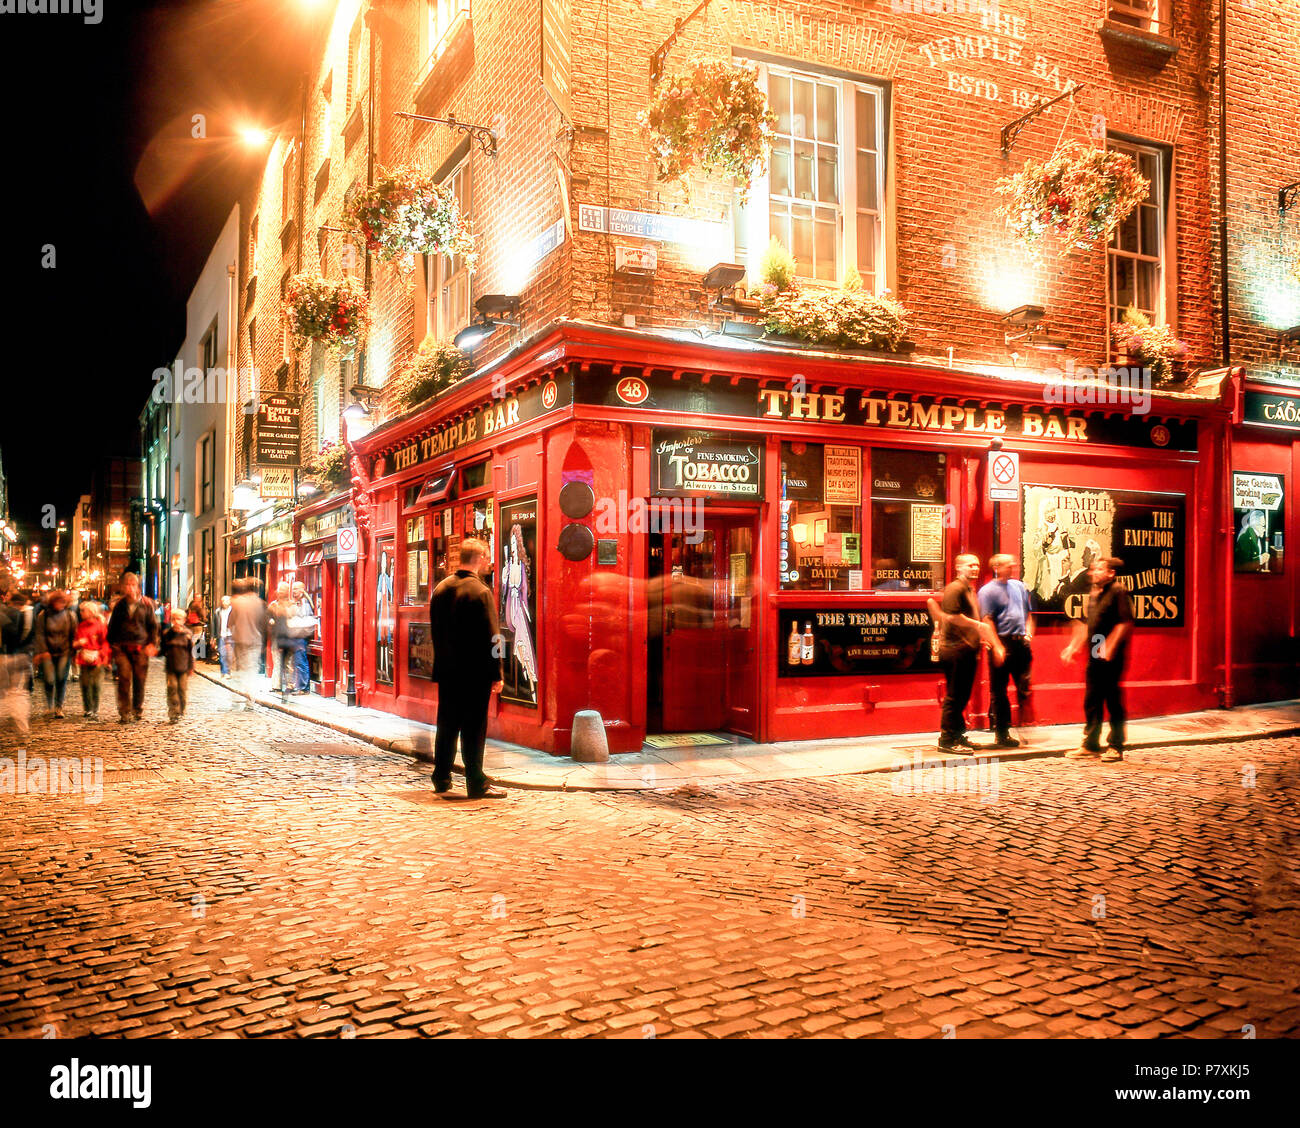 The Temple Bar Pub at night, Temple Bar, Dublin, Leinster Province, Republic of Ireland - Stock Image